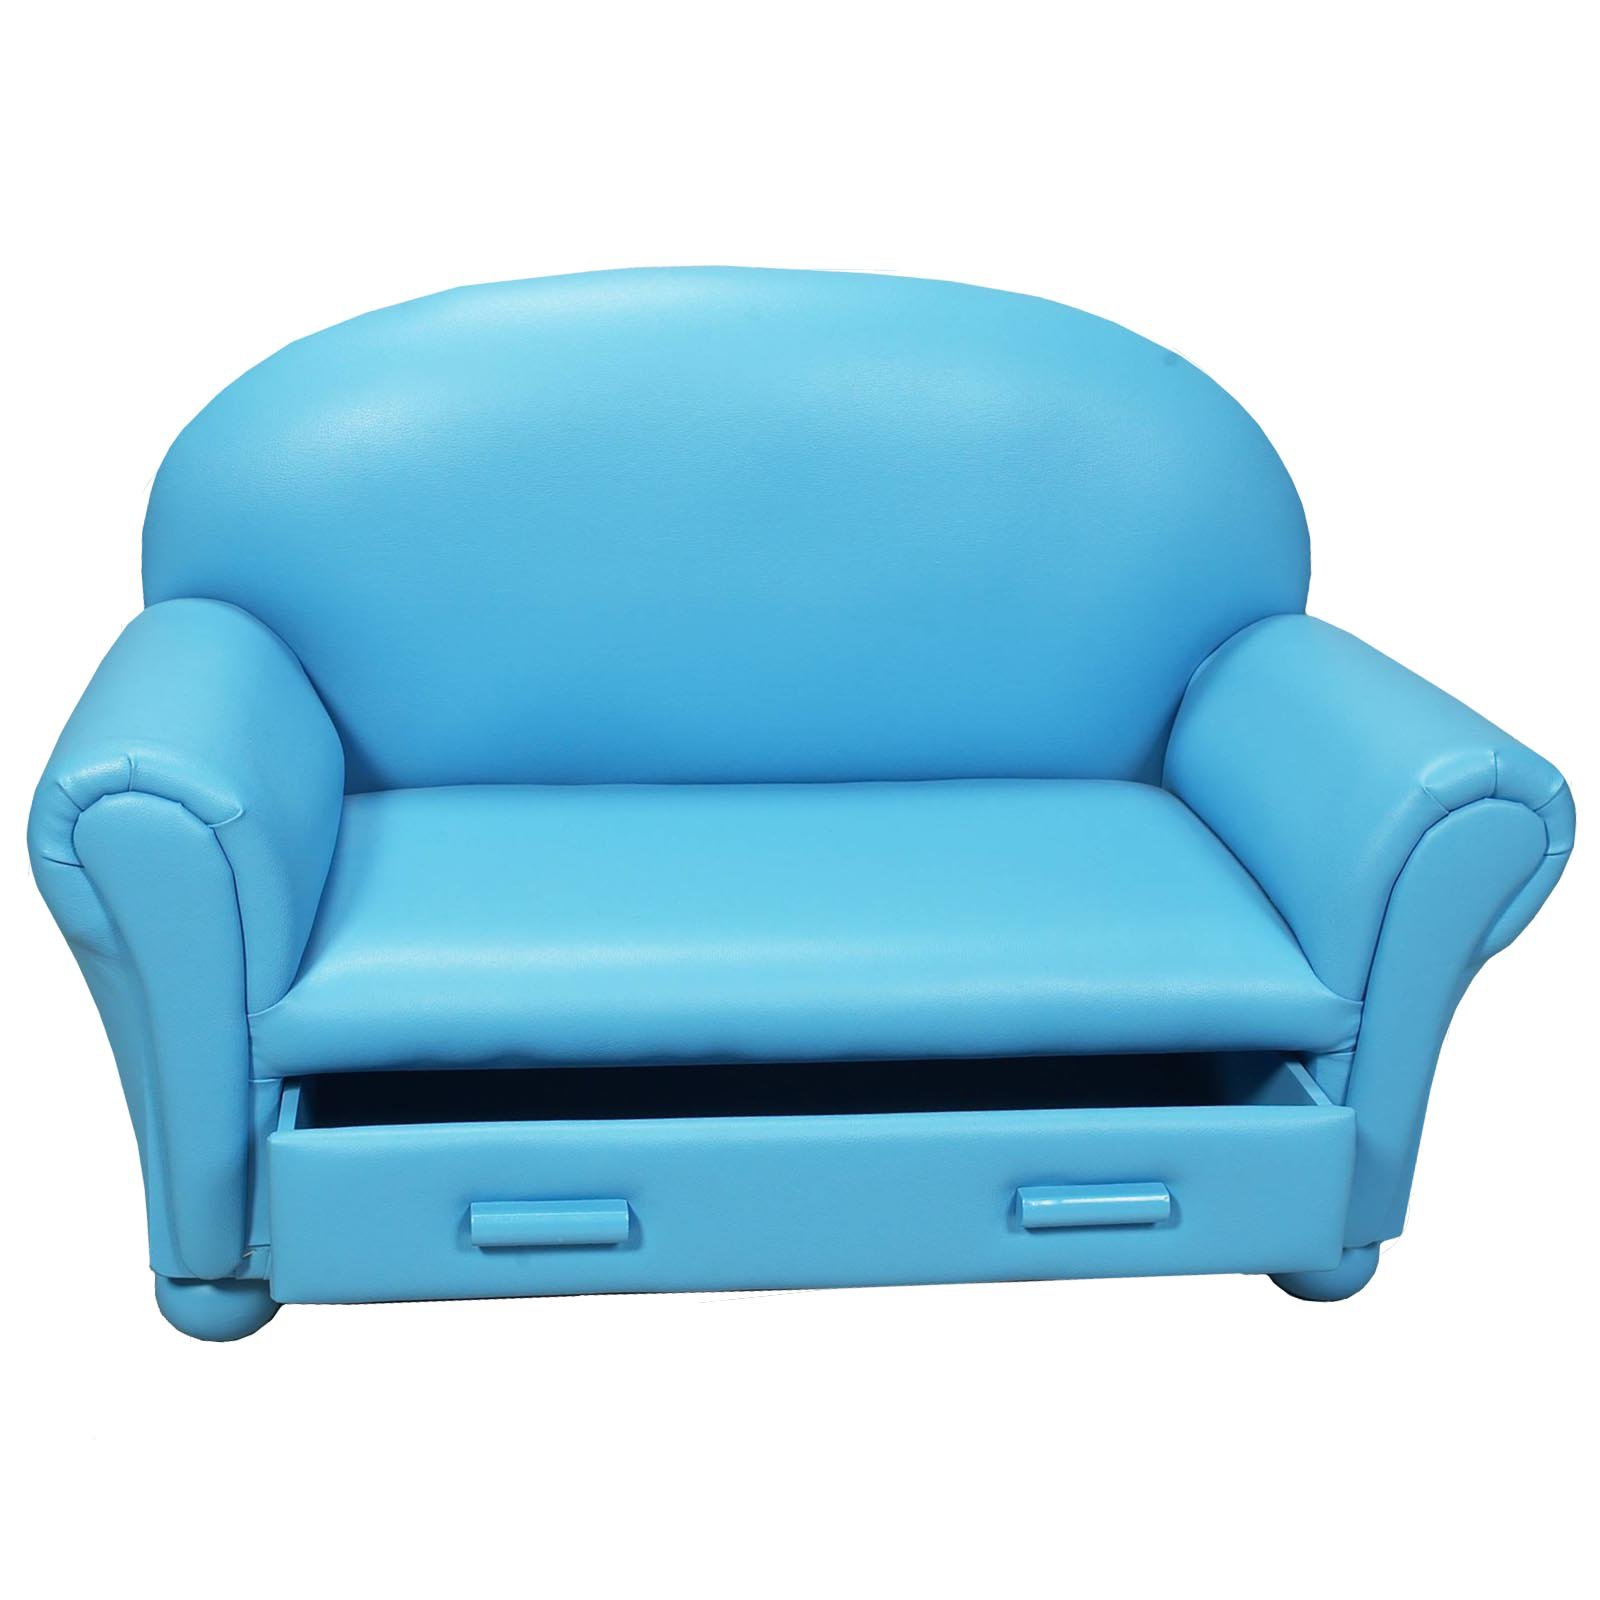 Childrens Sofa with Storage Drawer